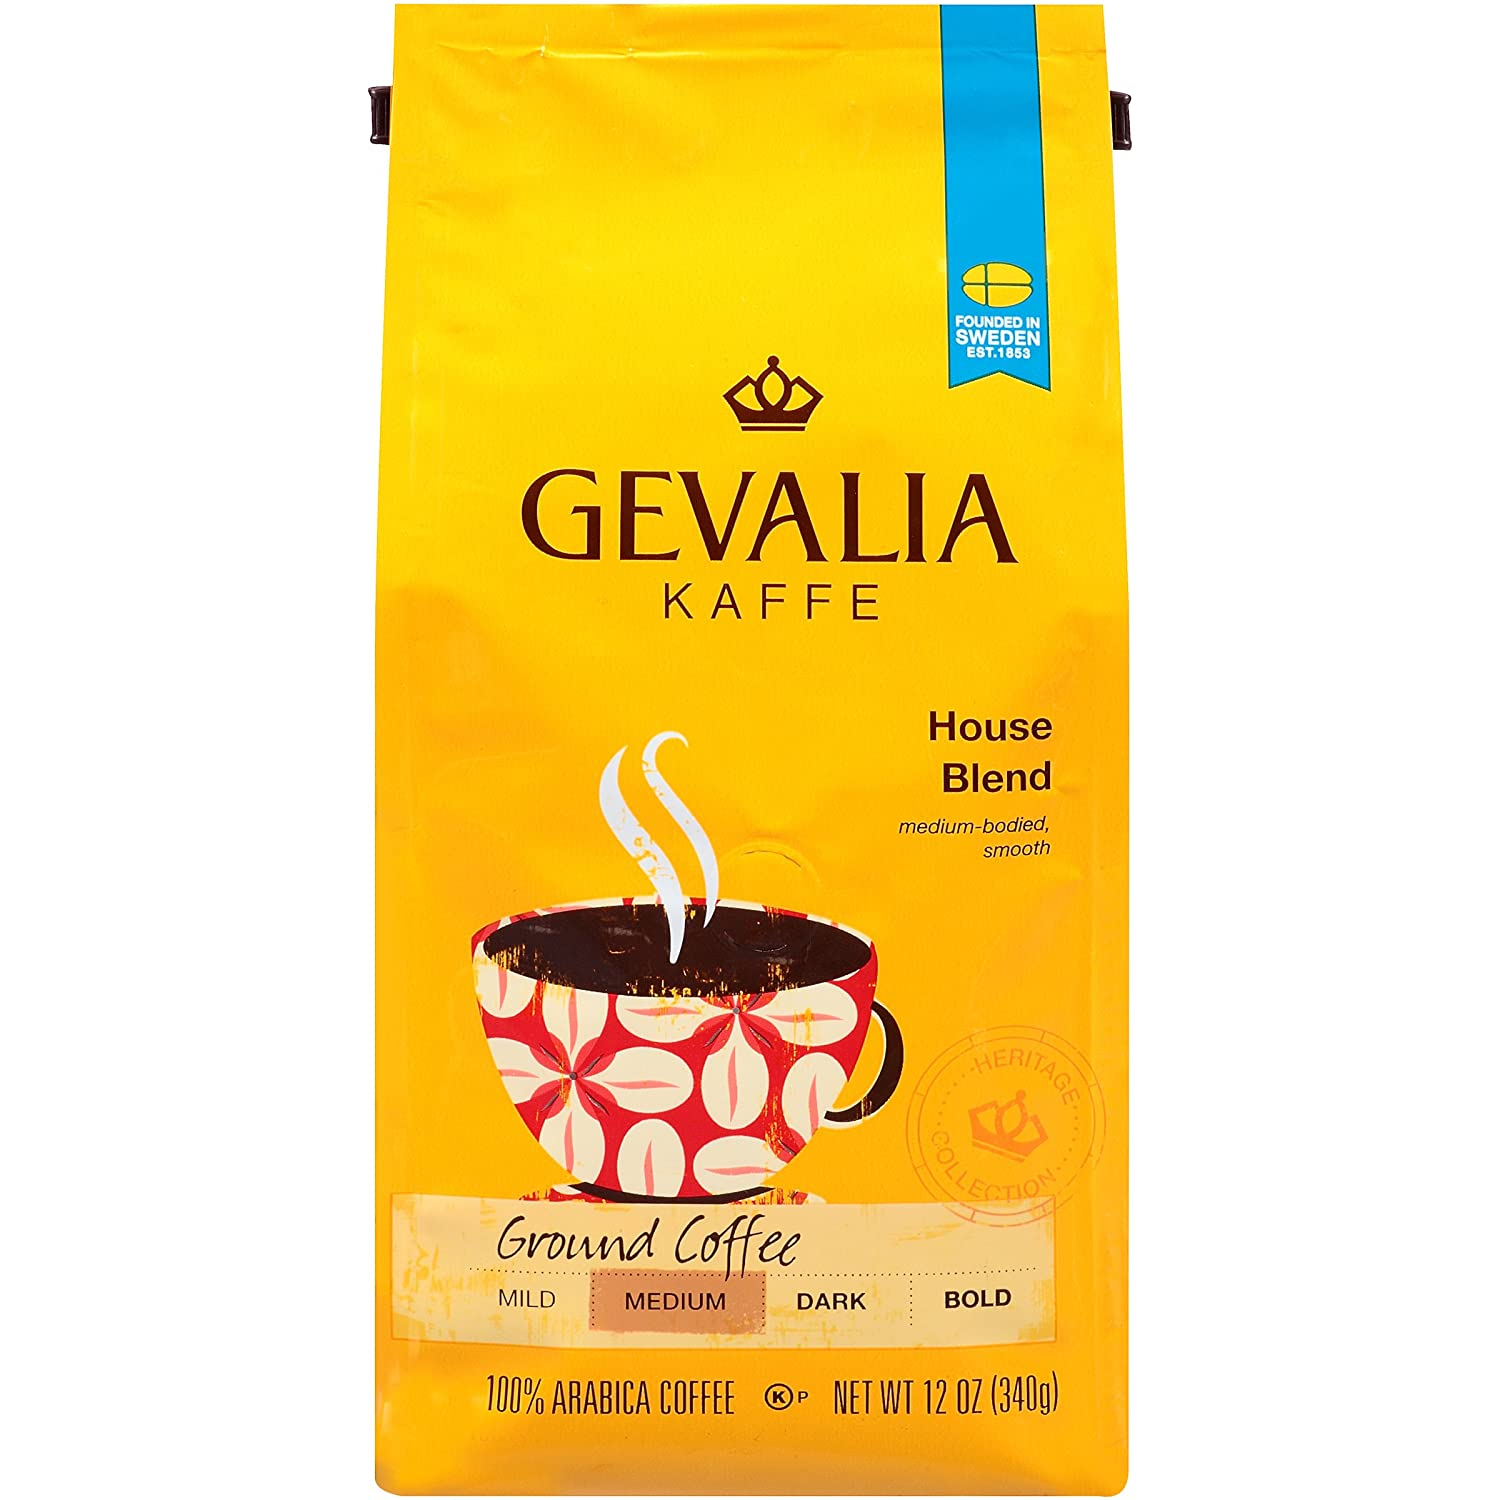 Gevalia House Blend Coffee, Medium Roast, Ground, 12 Ounce